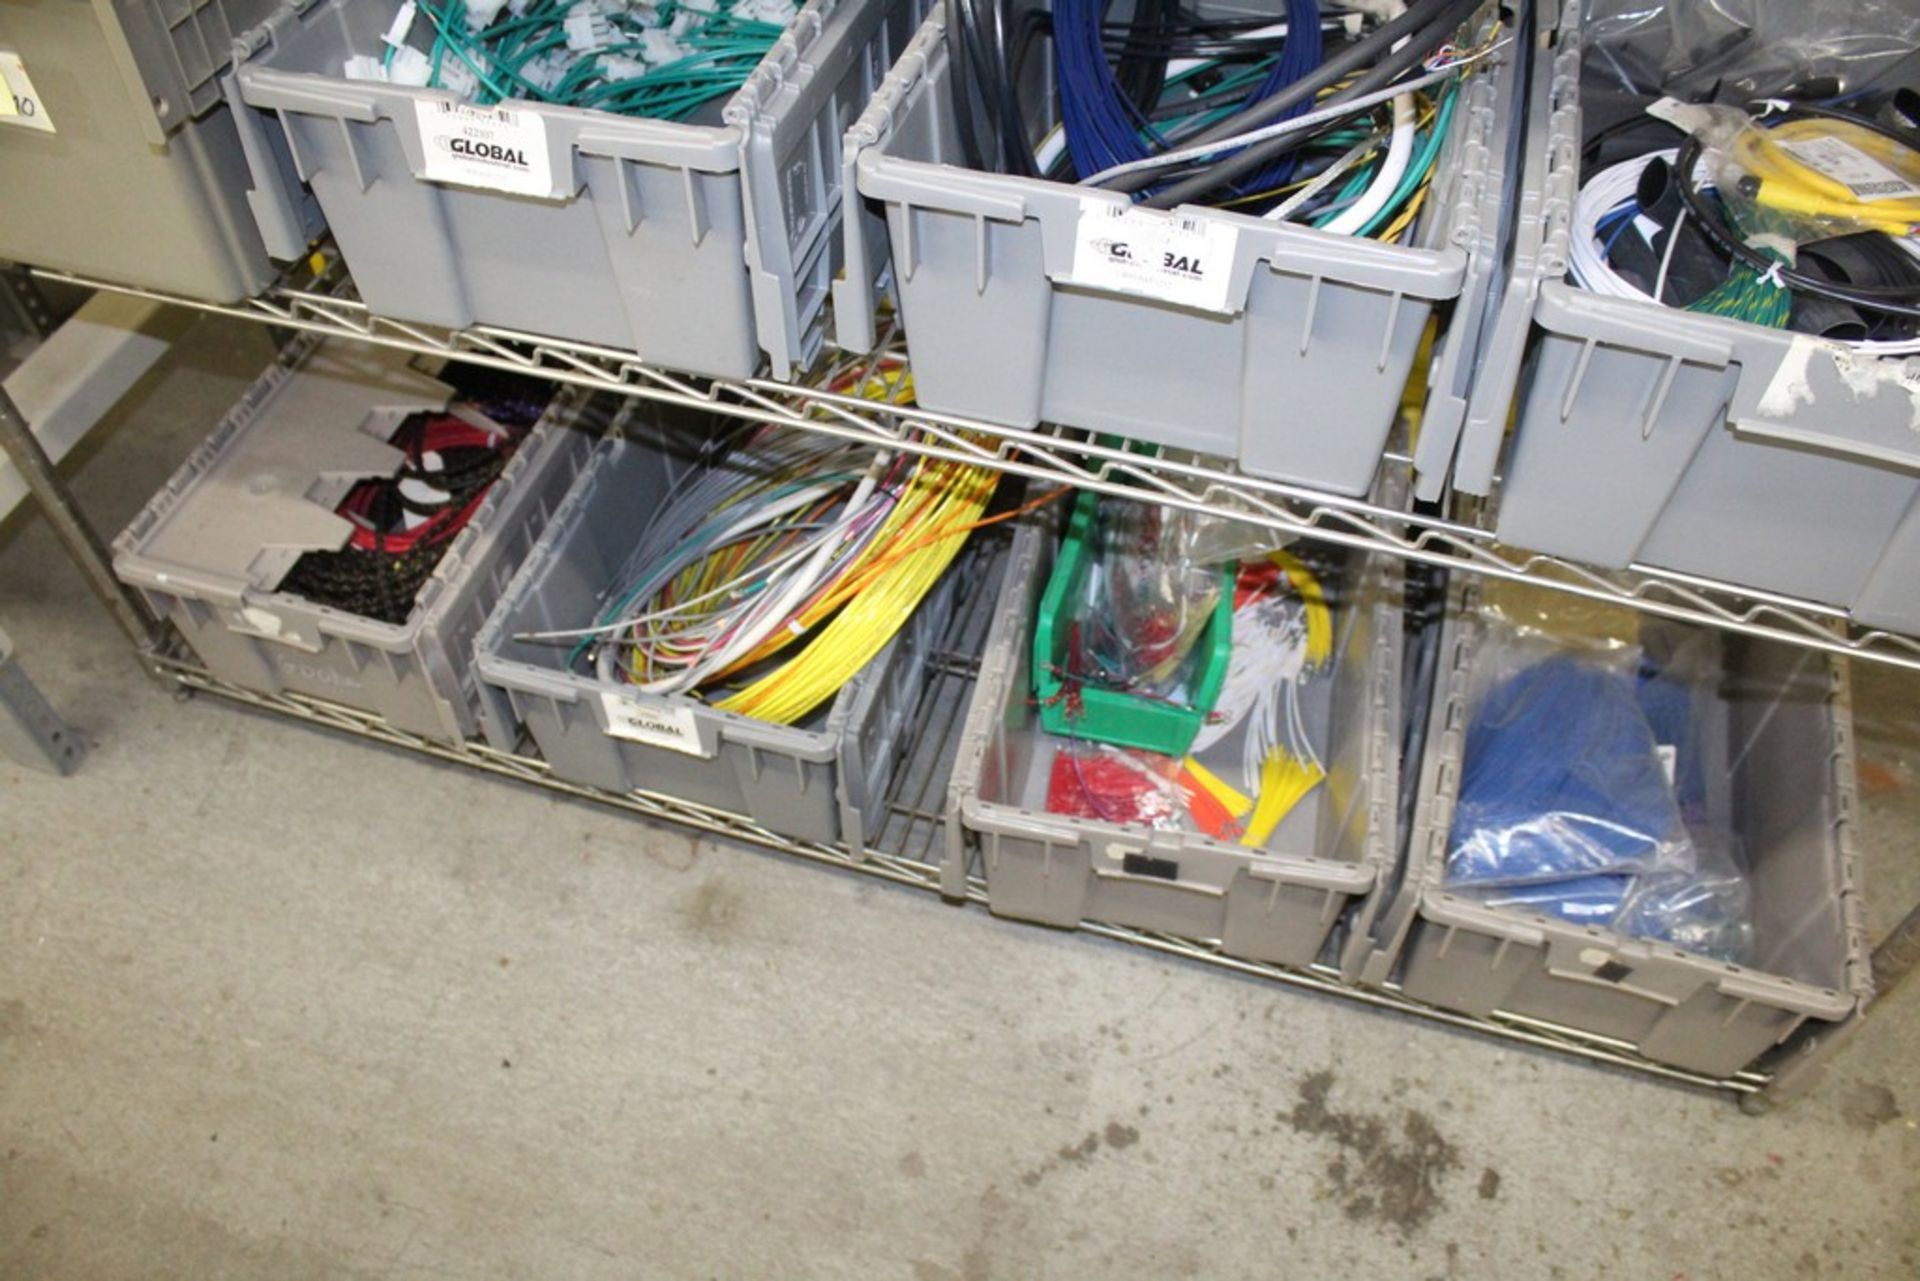 Lot 2048 - WIRE AND COMPONENTS ON SHELVES, NO SHELVING